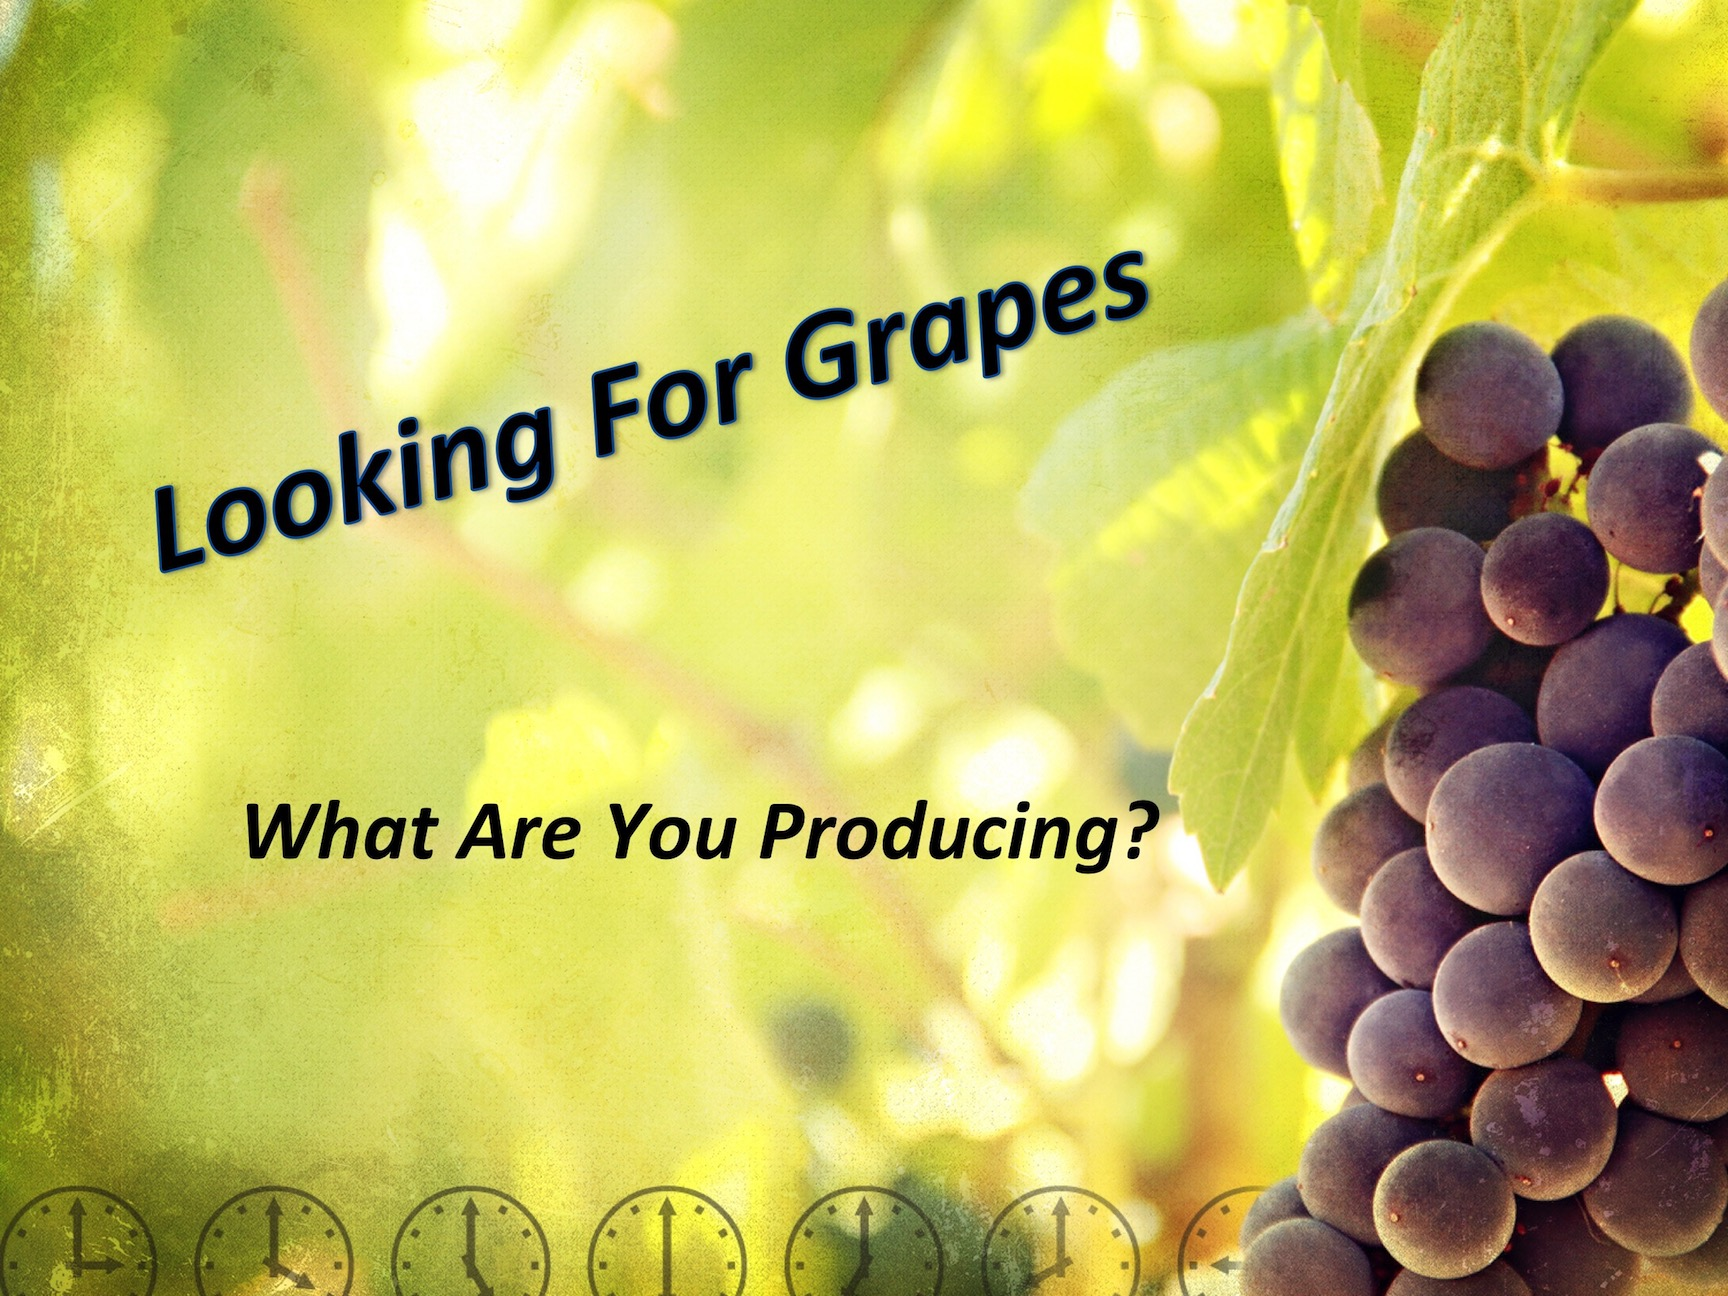 Looking For Grapes P4 6/28/2017 8:35:19 AM